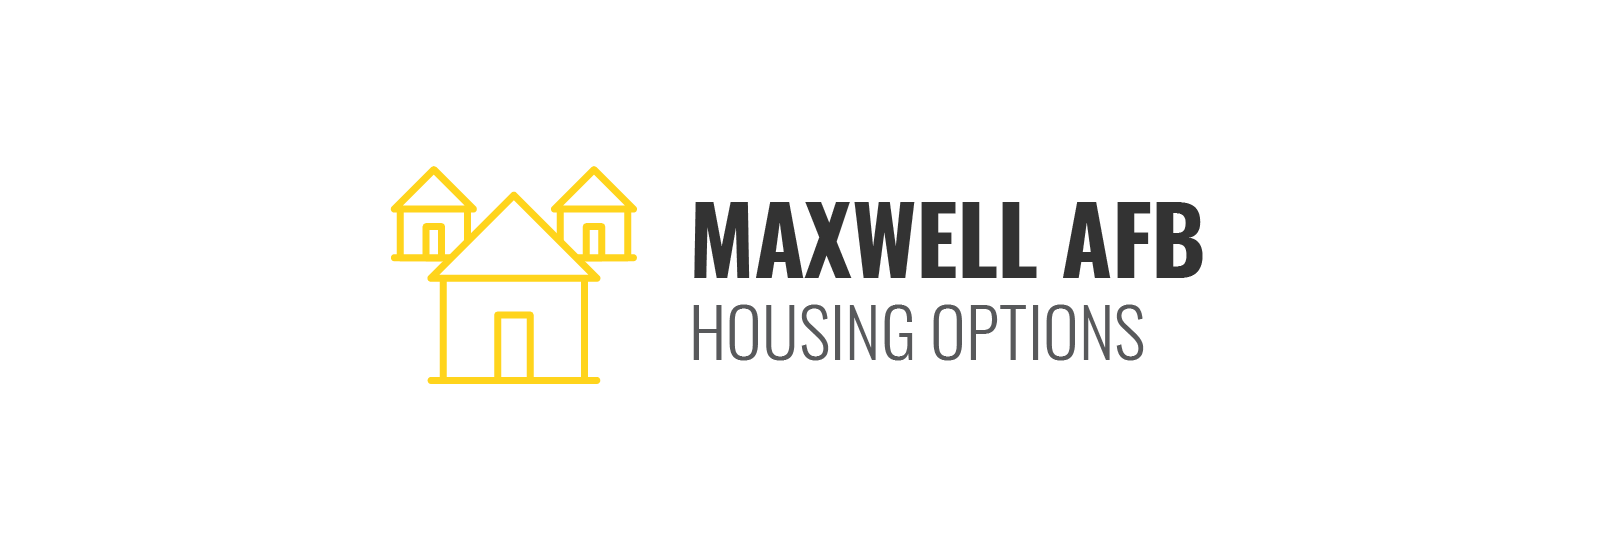 Maxwell AFB Housing Options